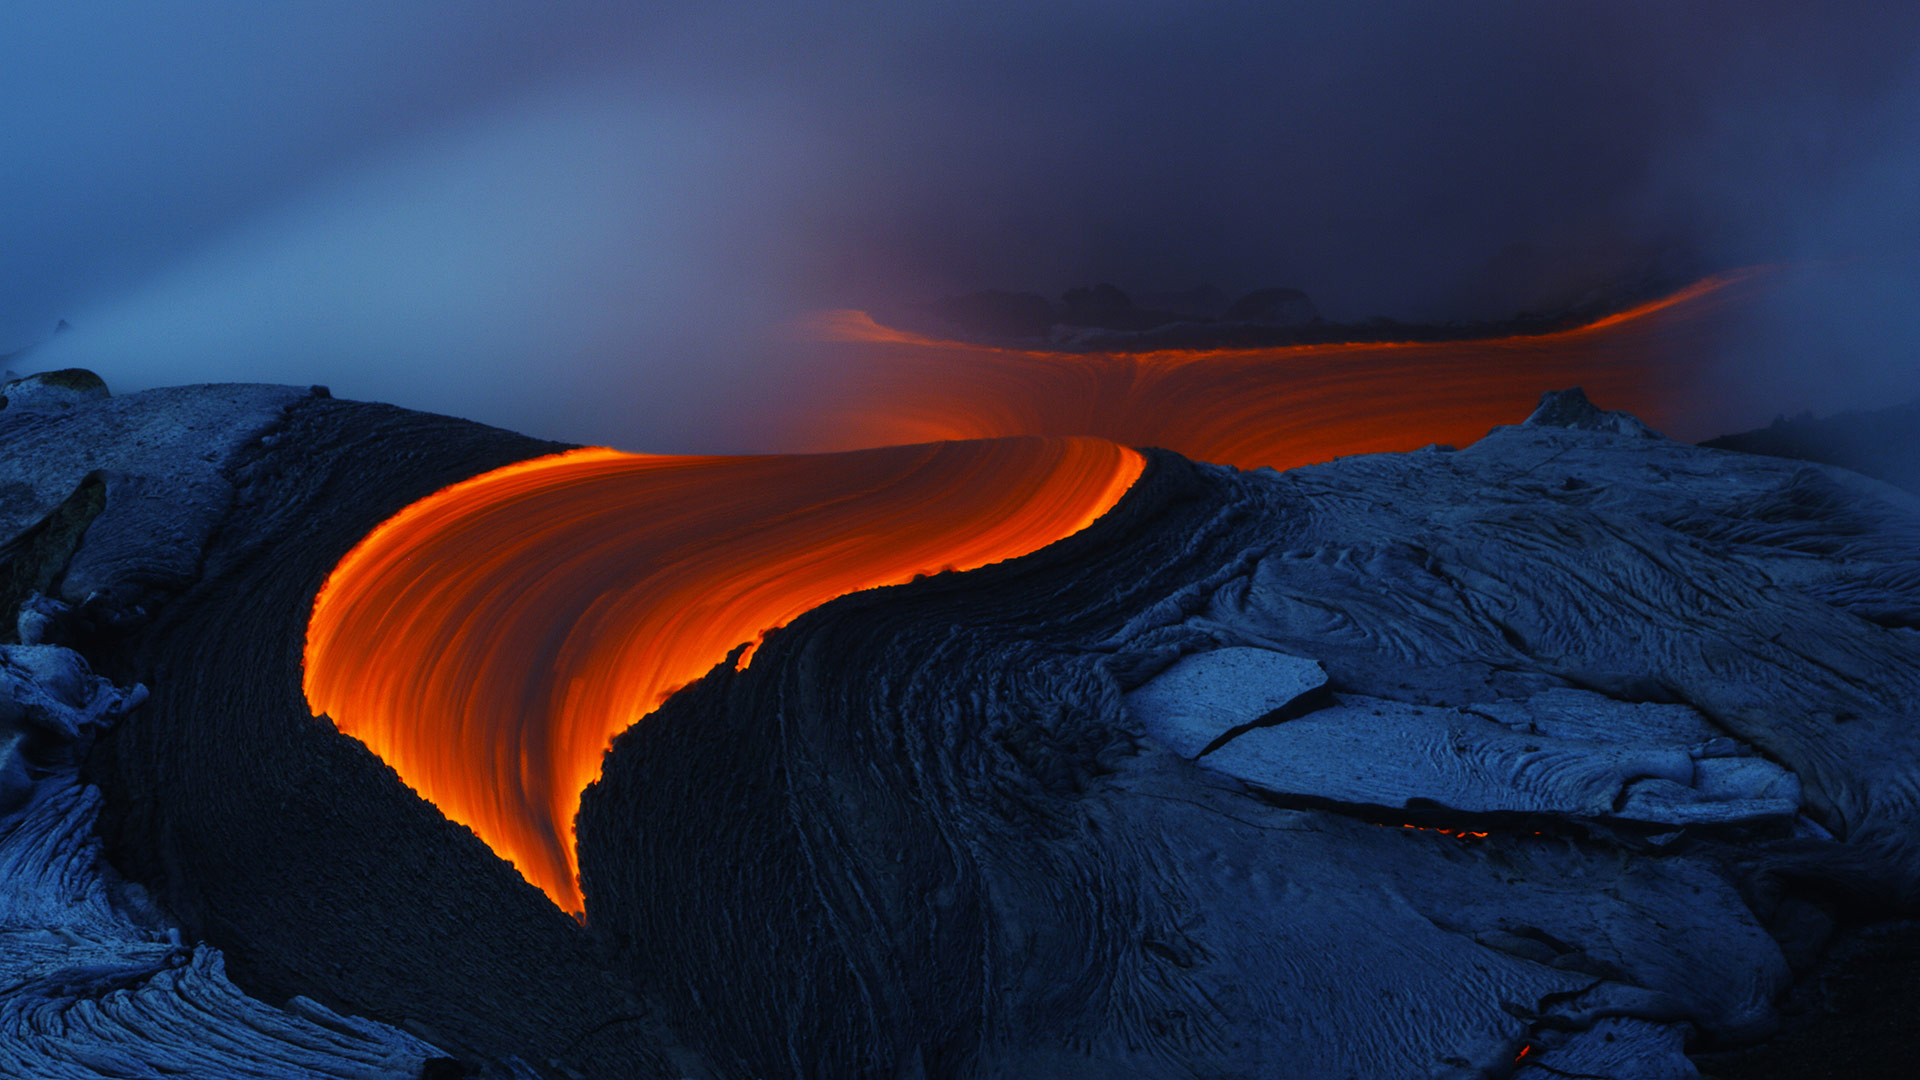 1280x1024 Volcano 1280x1024 Resolution Hd 4k Wallpapers Images